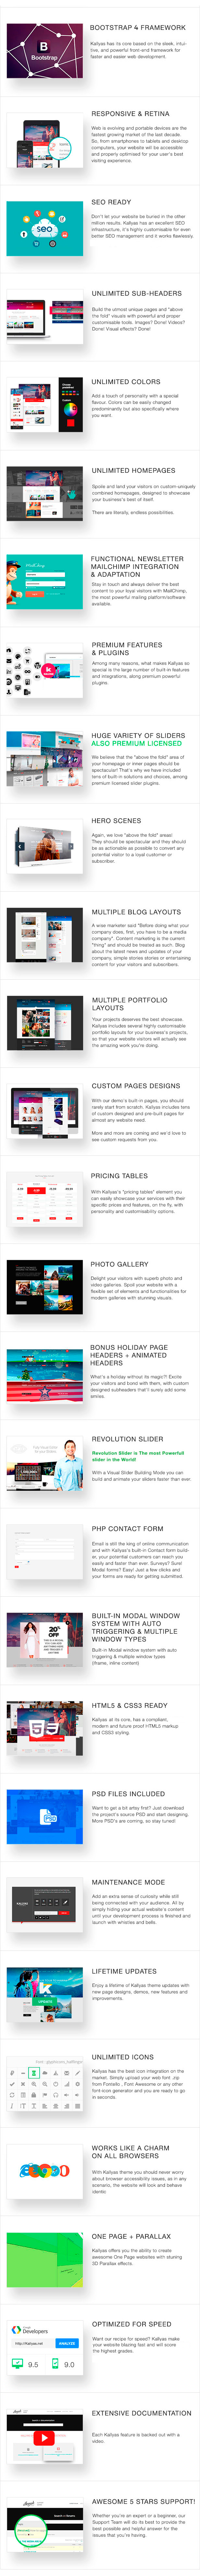 KALLYAS - Gigantic Premium Multi-Purpose HTML5 Template + Page Builder - 2